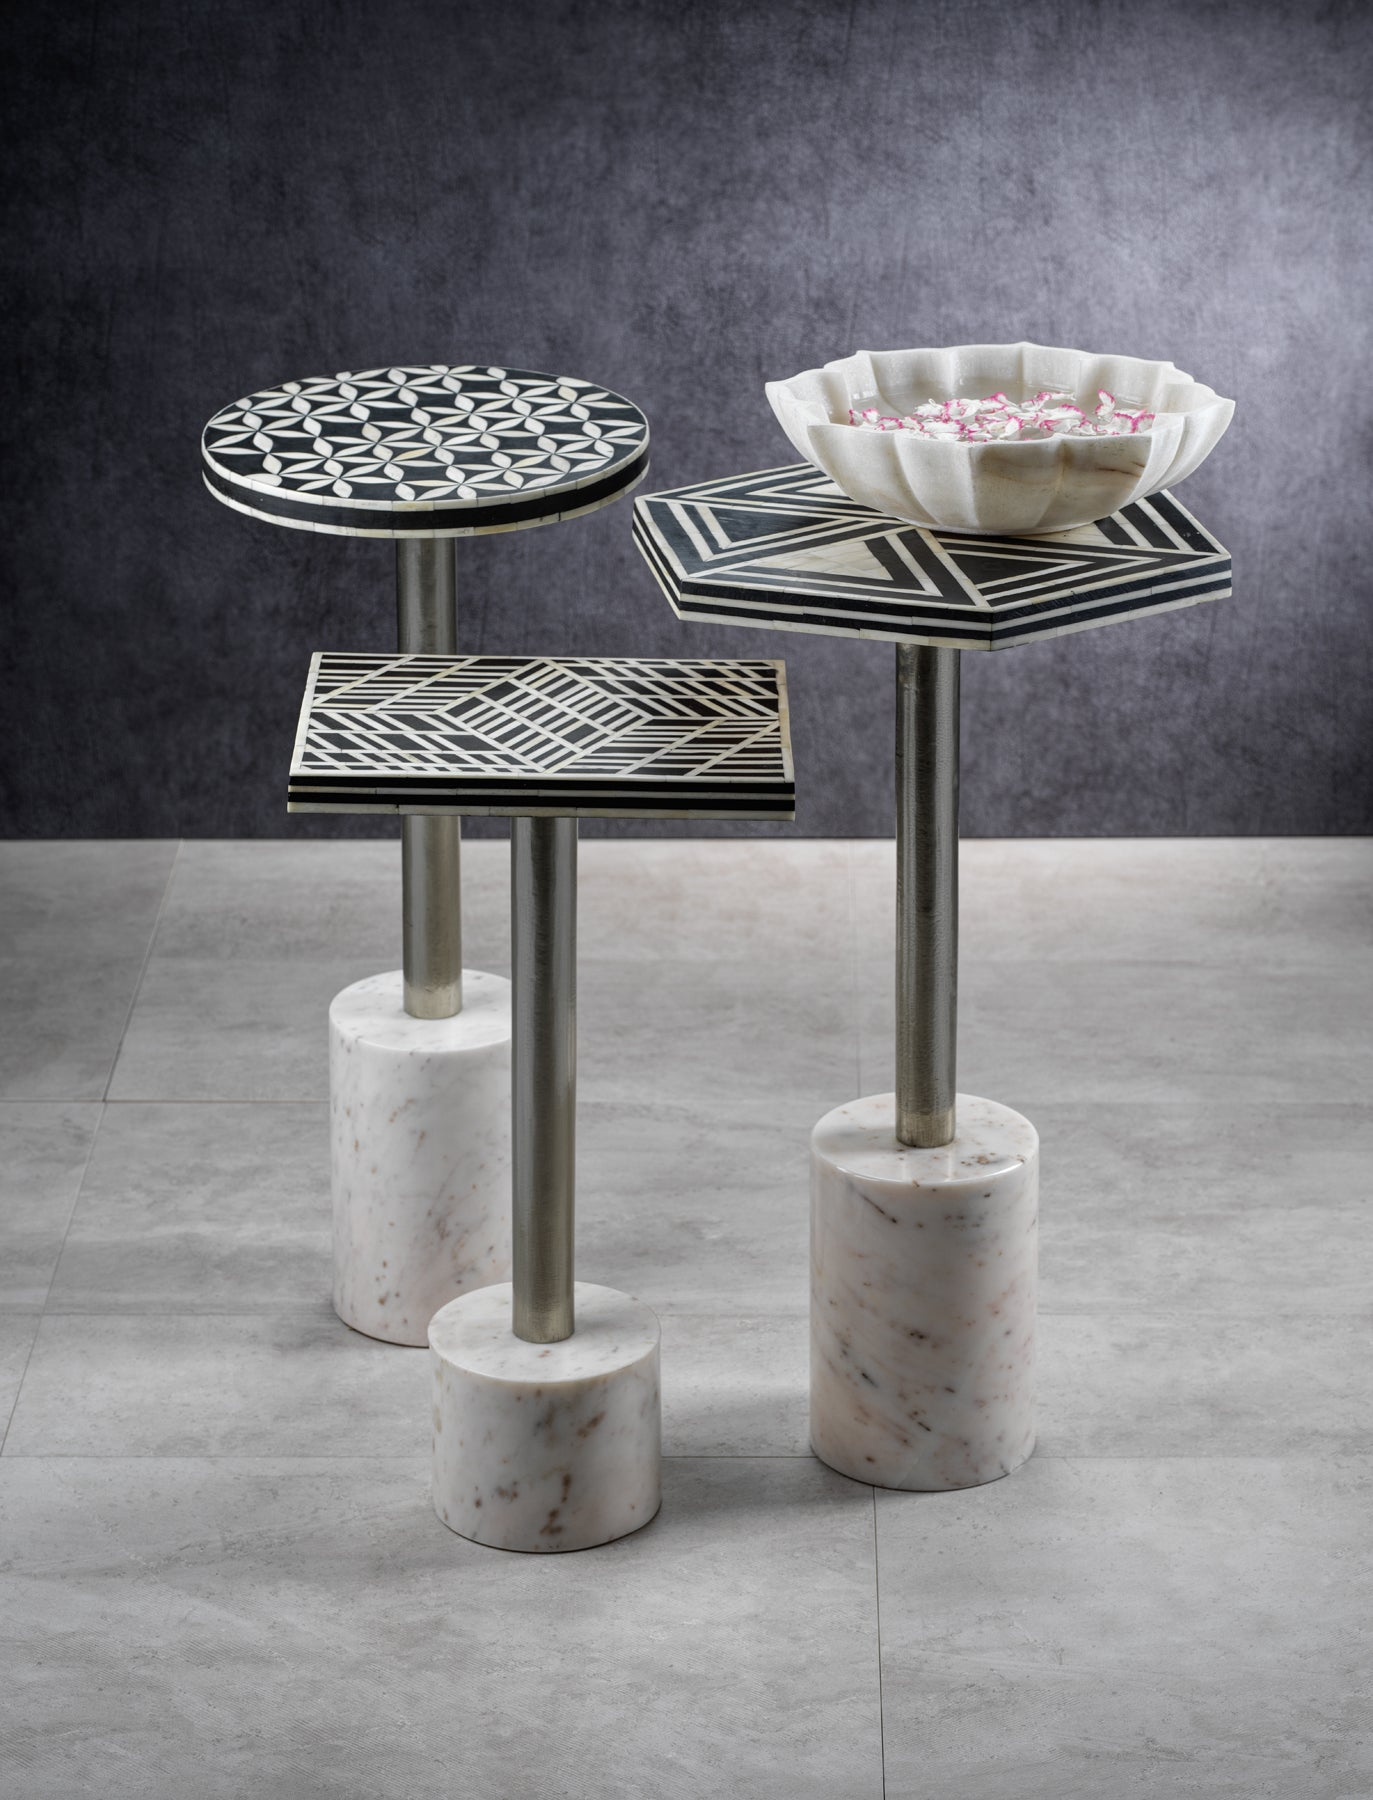 Sultana Rectangular Cocktail Table on Marble Base - CARLYLE AVENUE